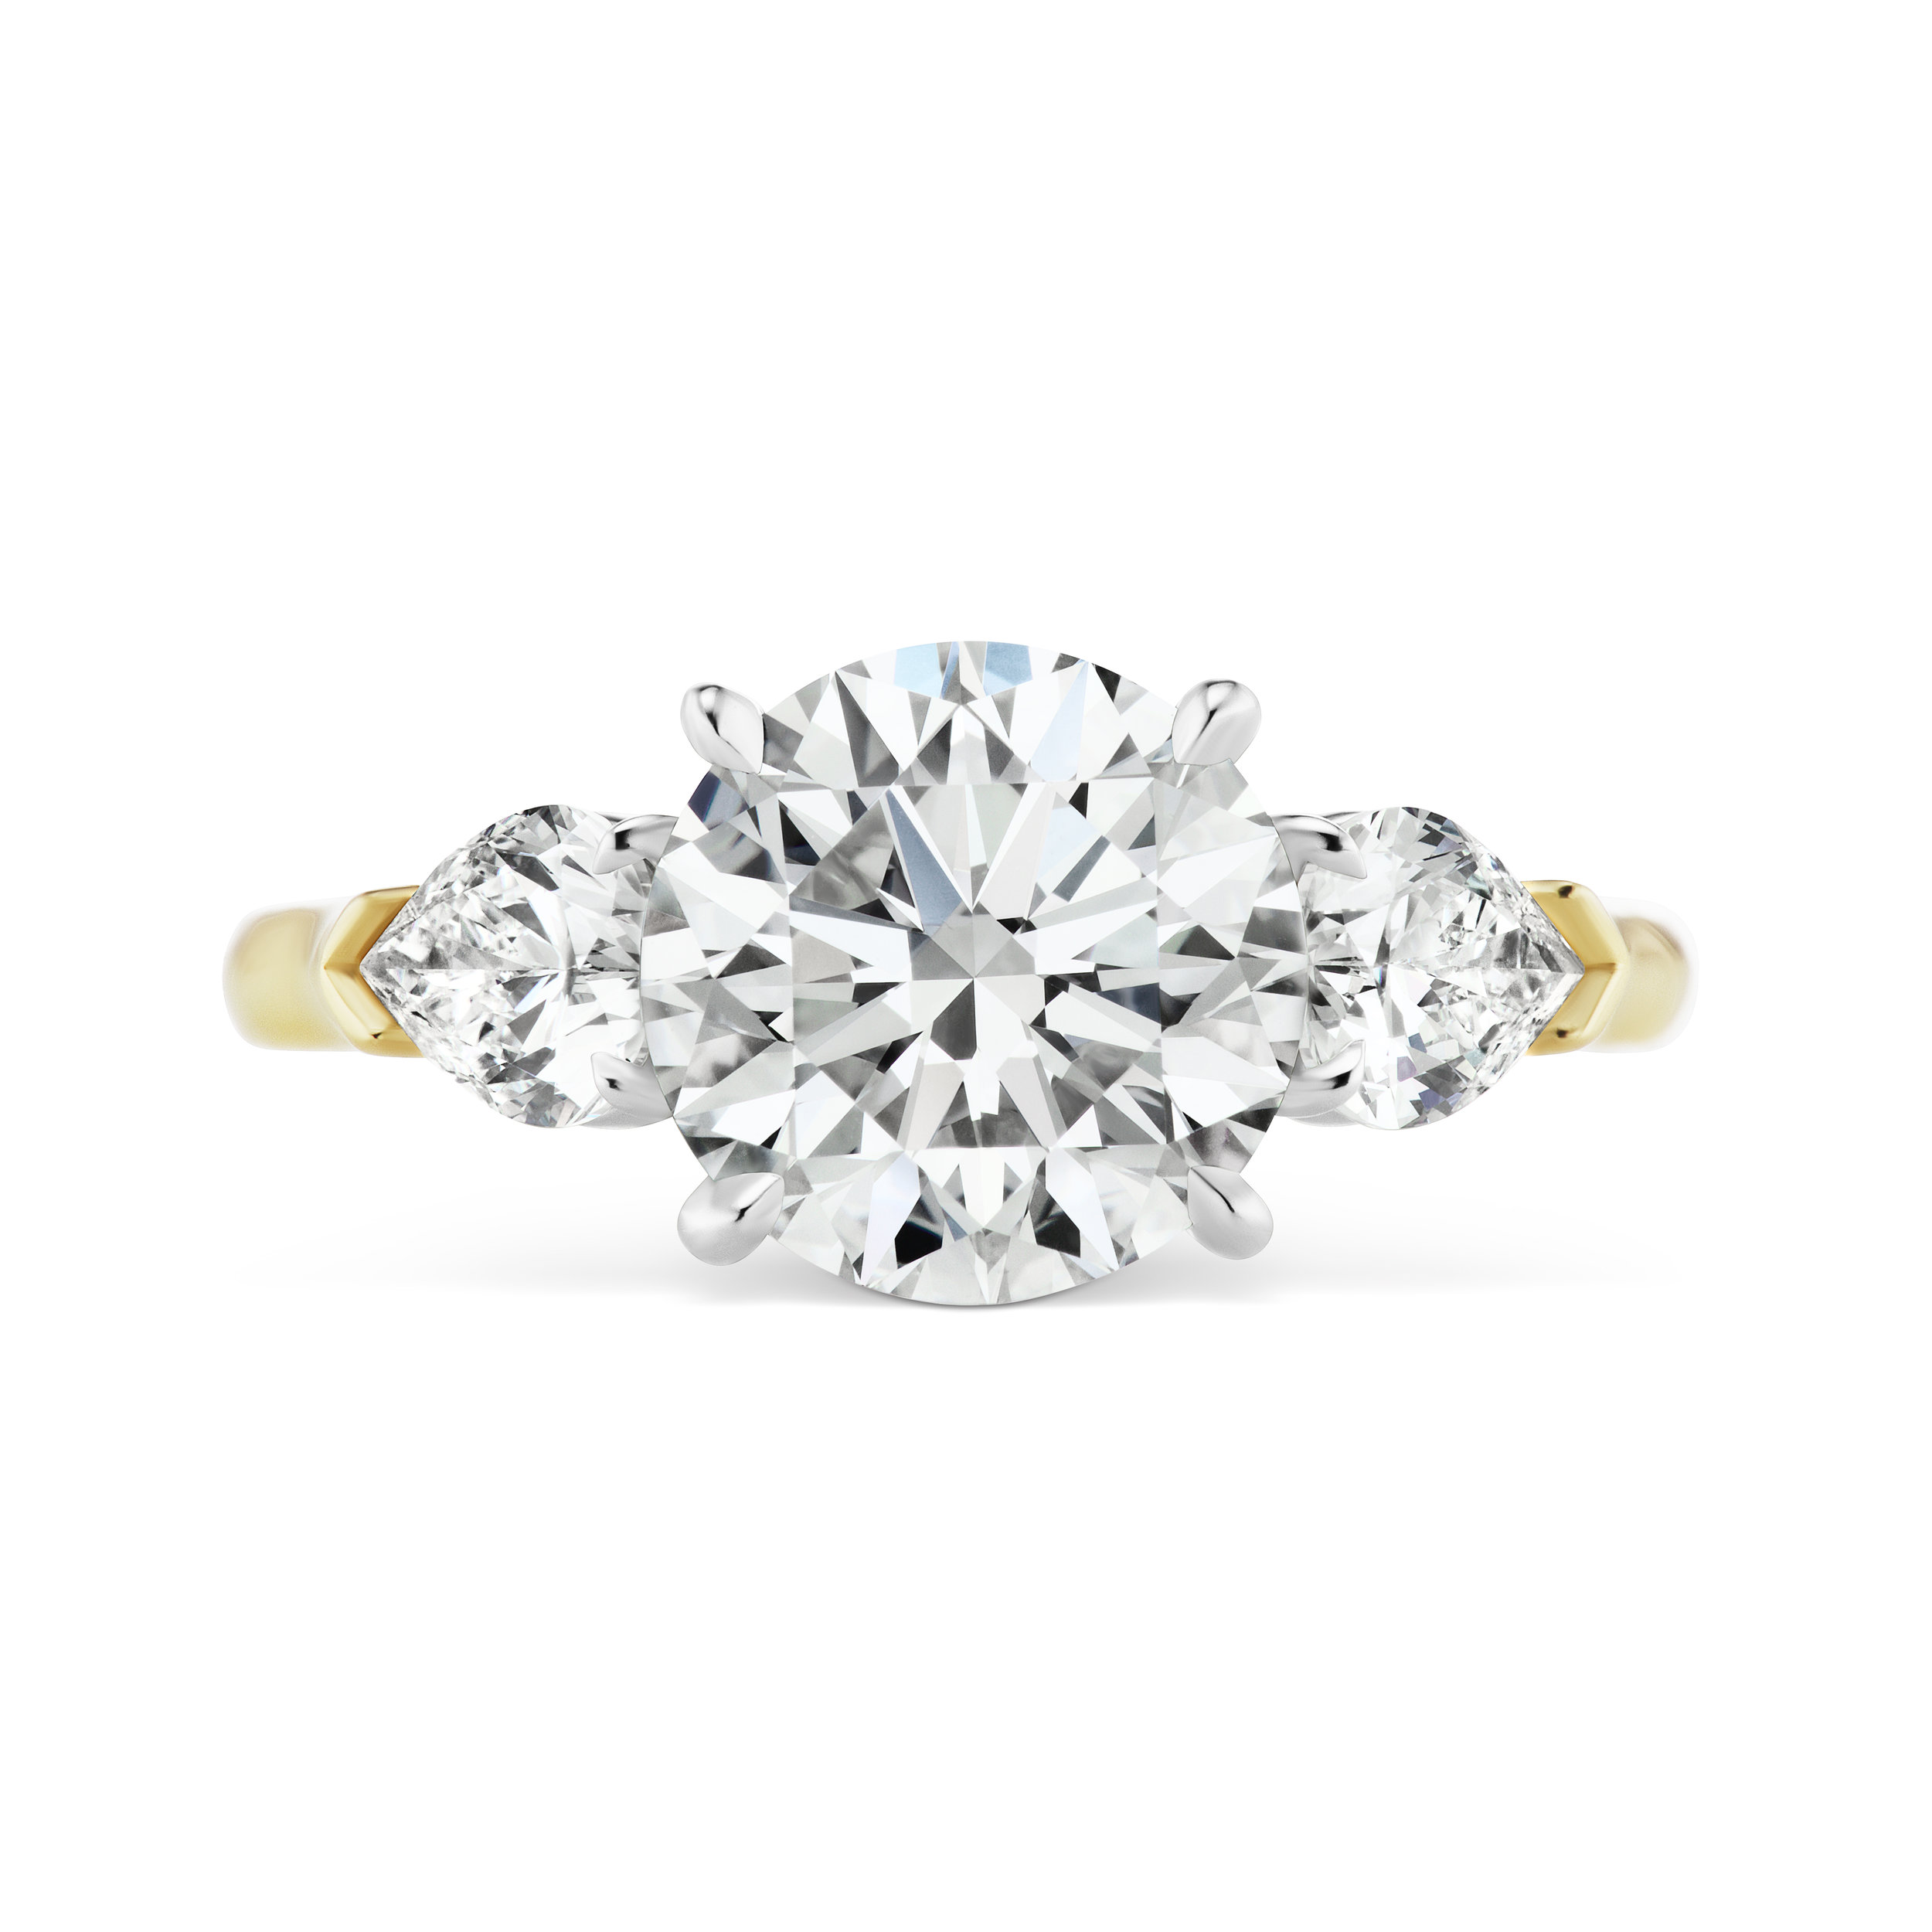 Round brilliant diamond ring with pear-shaped side stones, mounted in yellow gold and platinum.